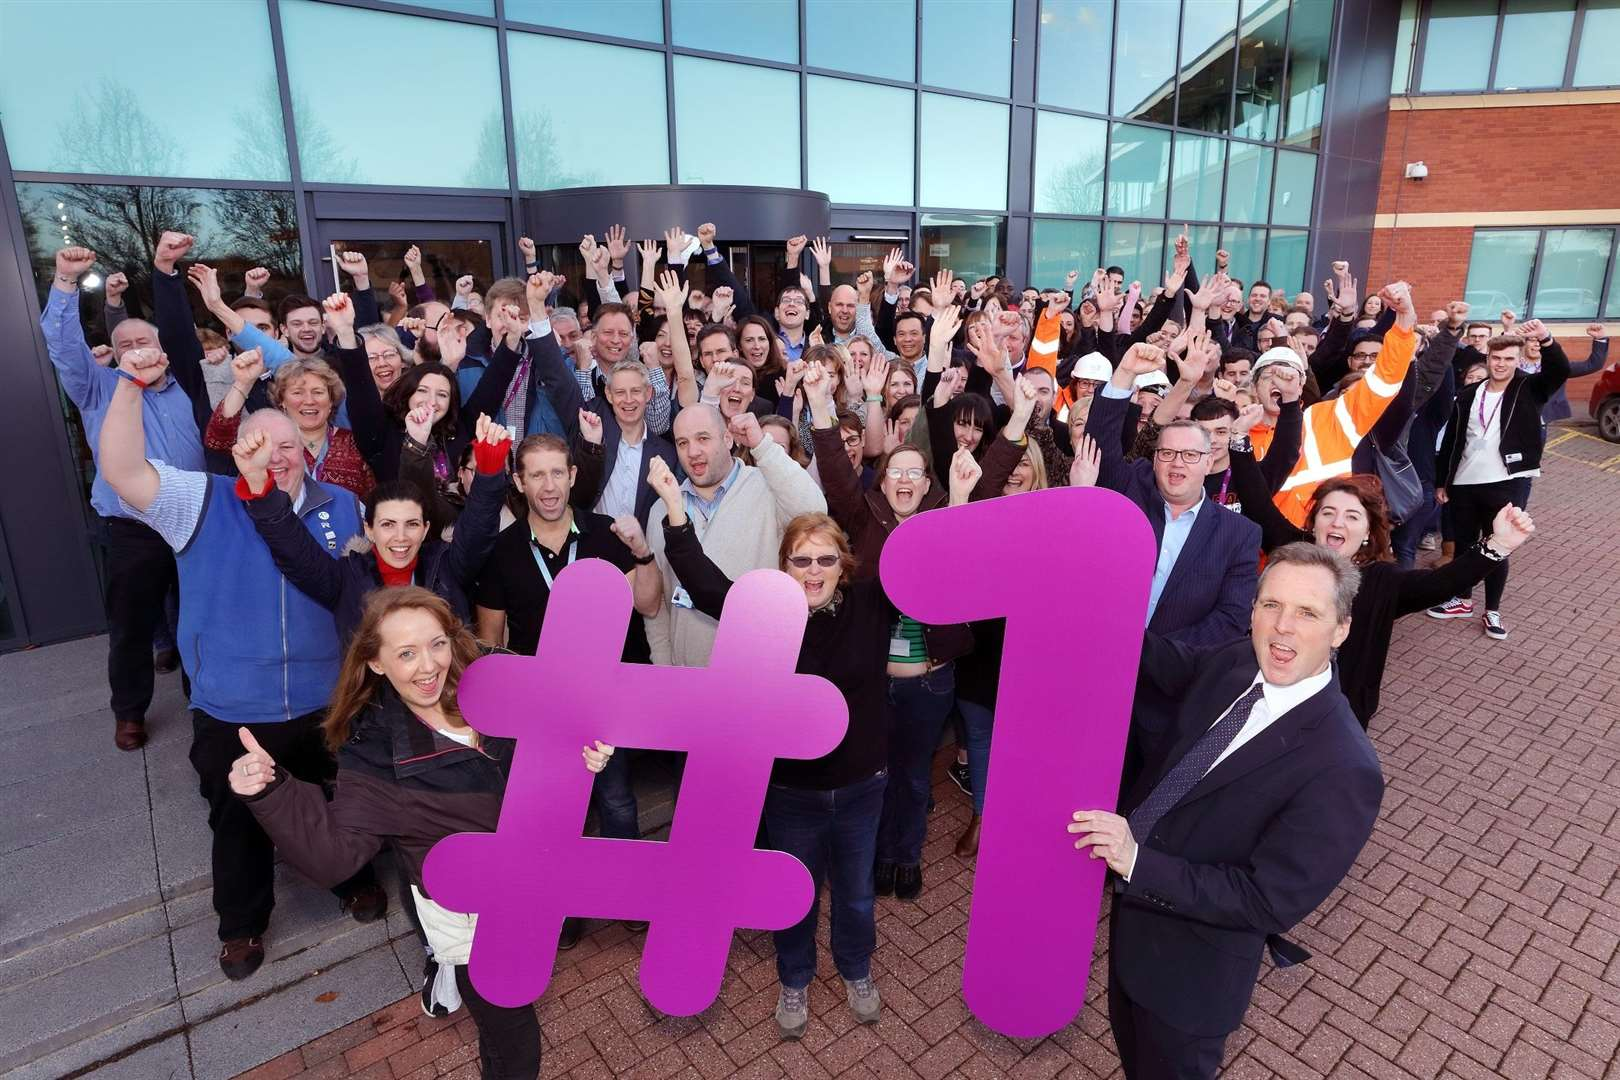 Anglian Water is named top place to work in a review of employers.